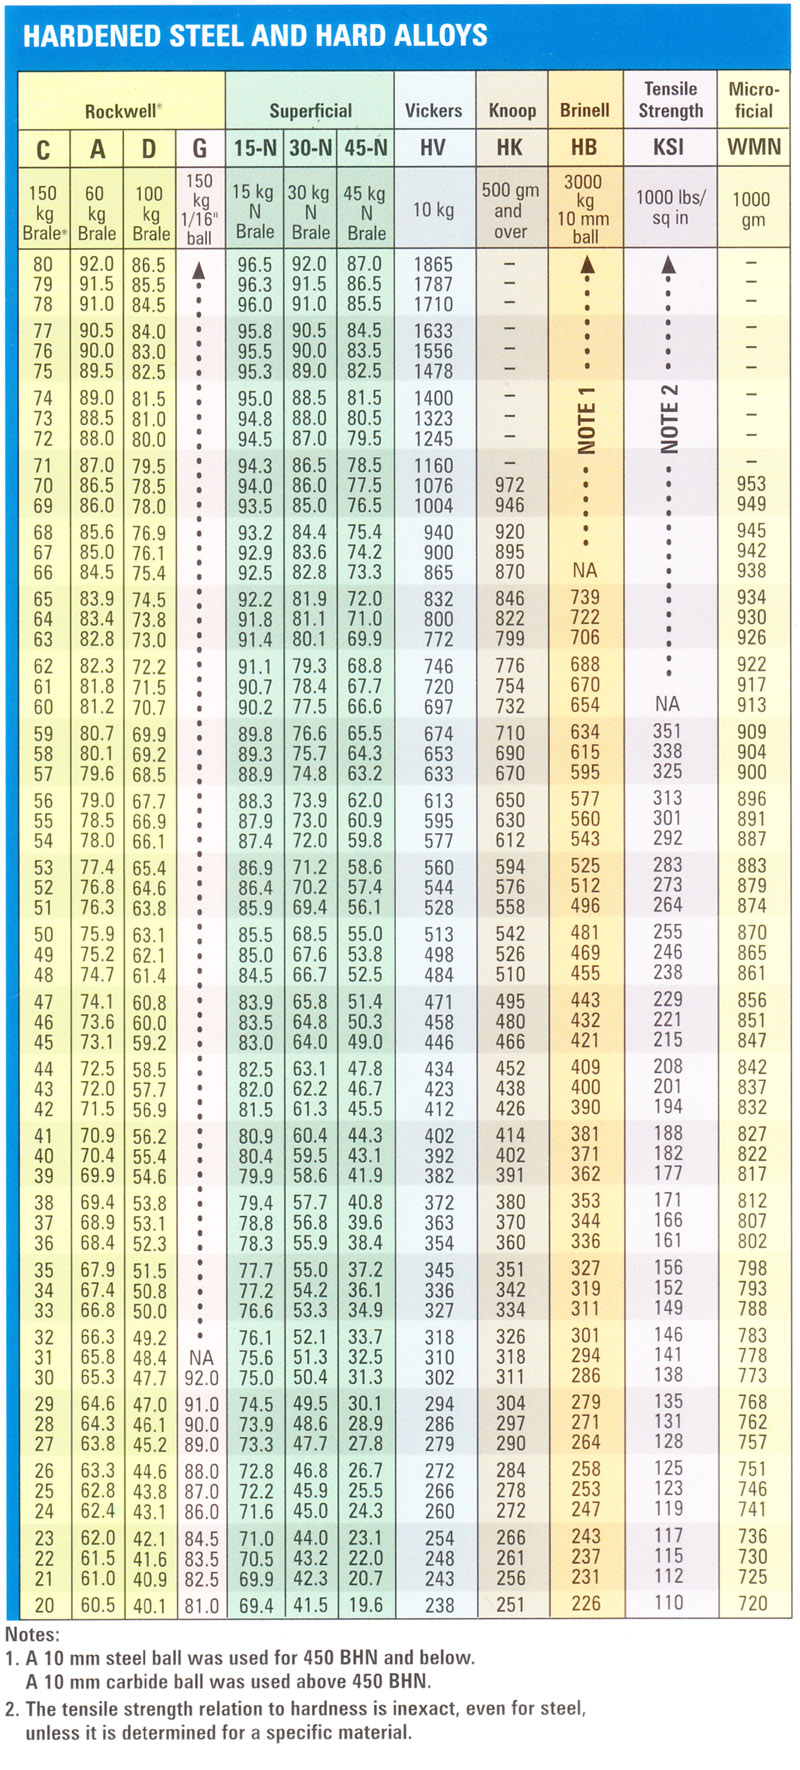 Hardness conversion chart rockwell c hardness range nvjuhfo Images